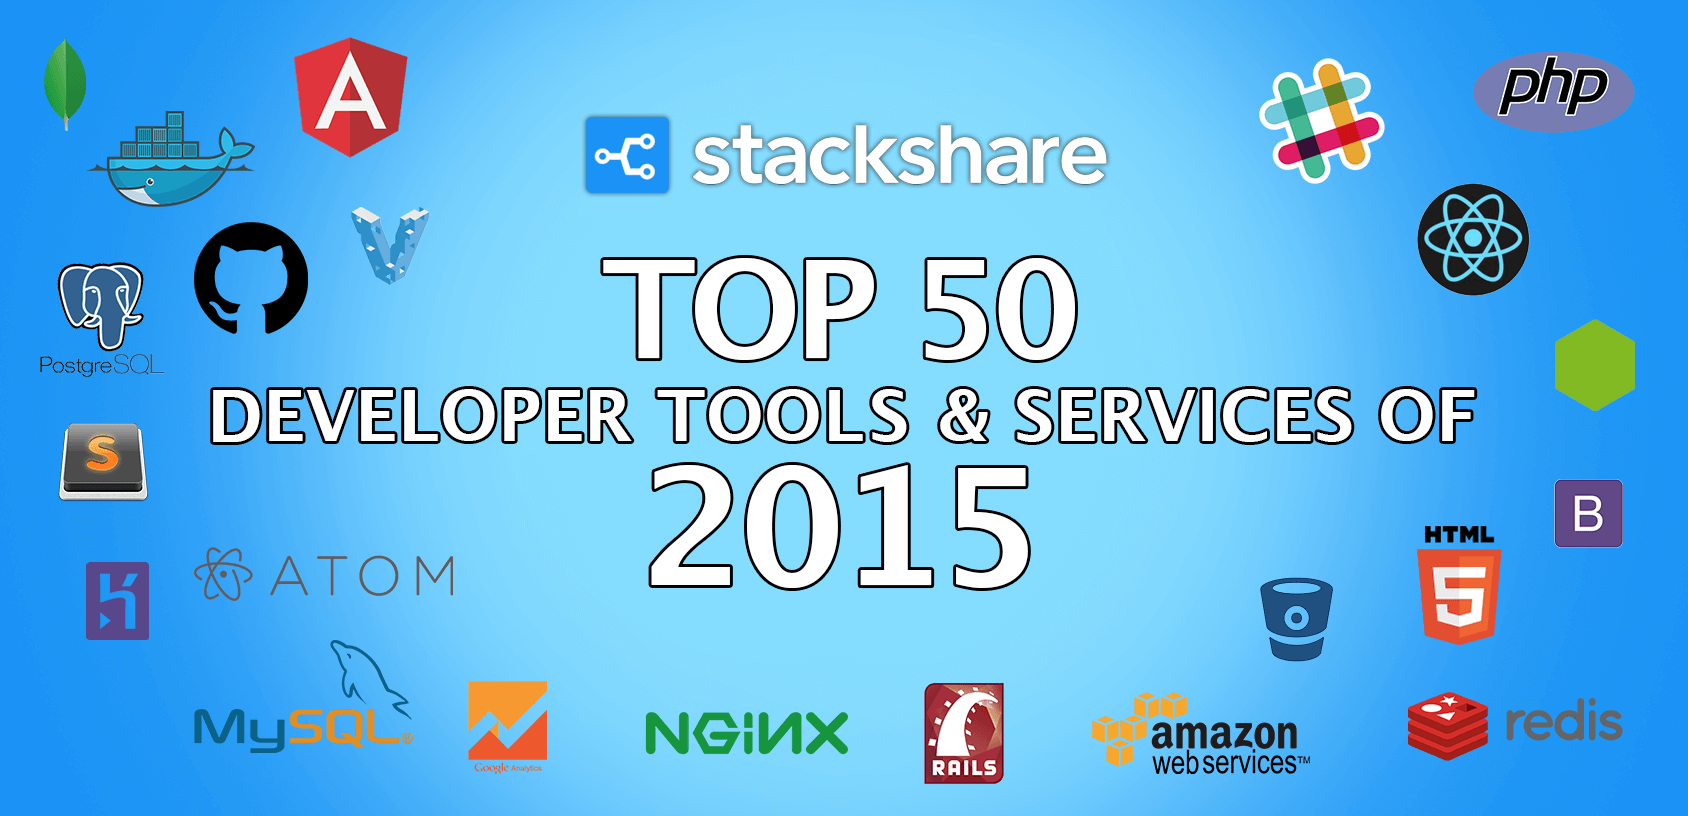 Top 50 Developer Tools & Services of 2015